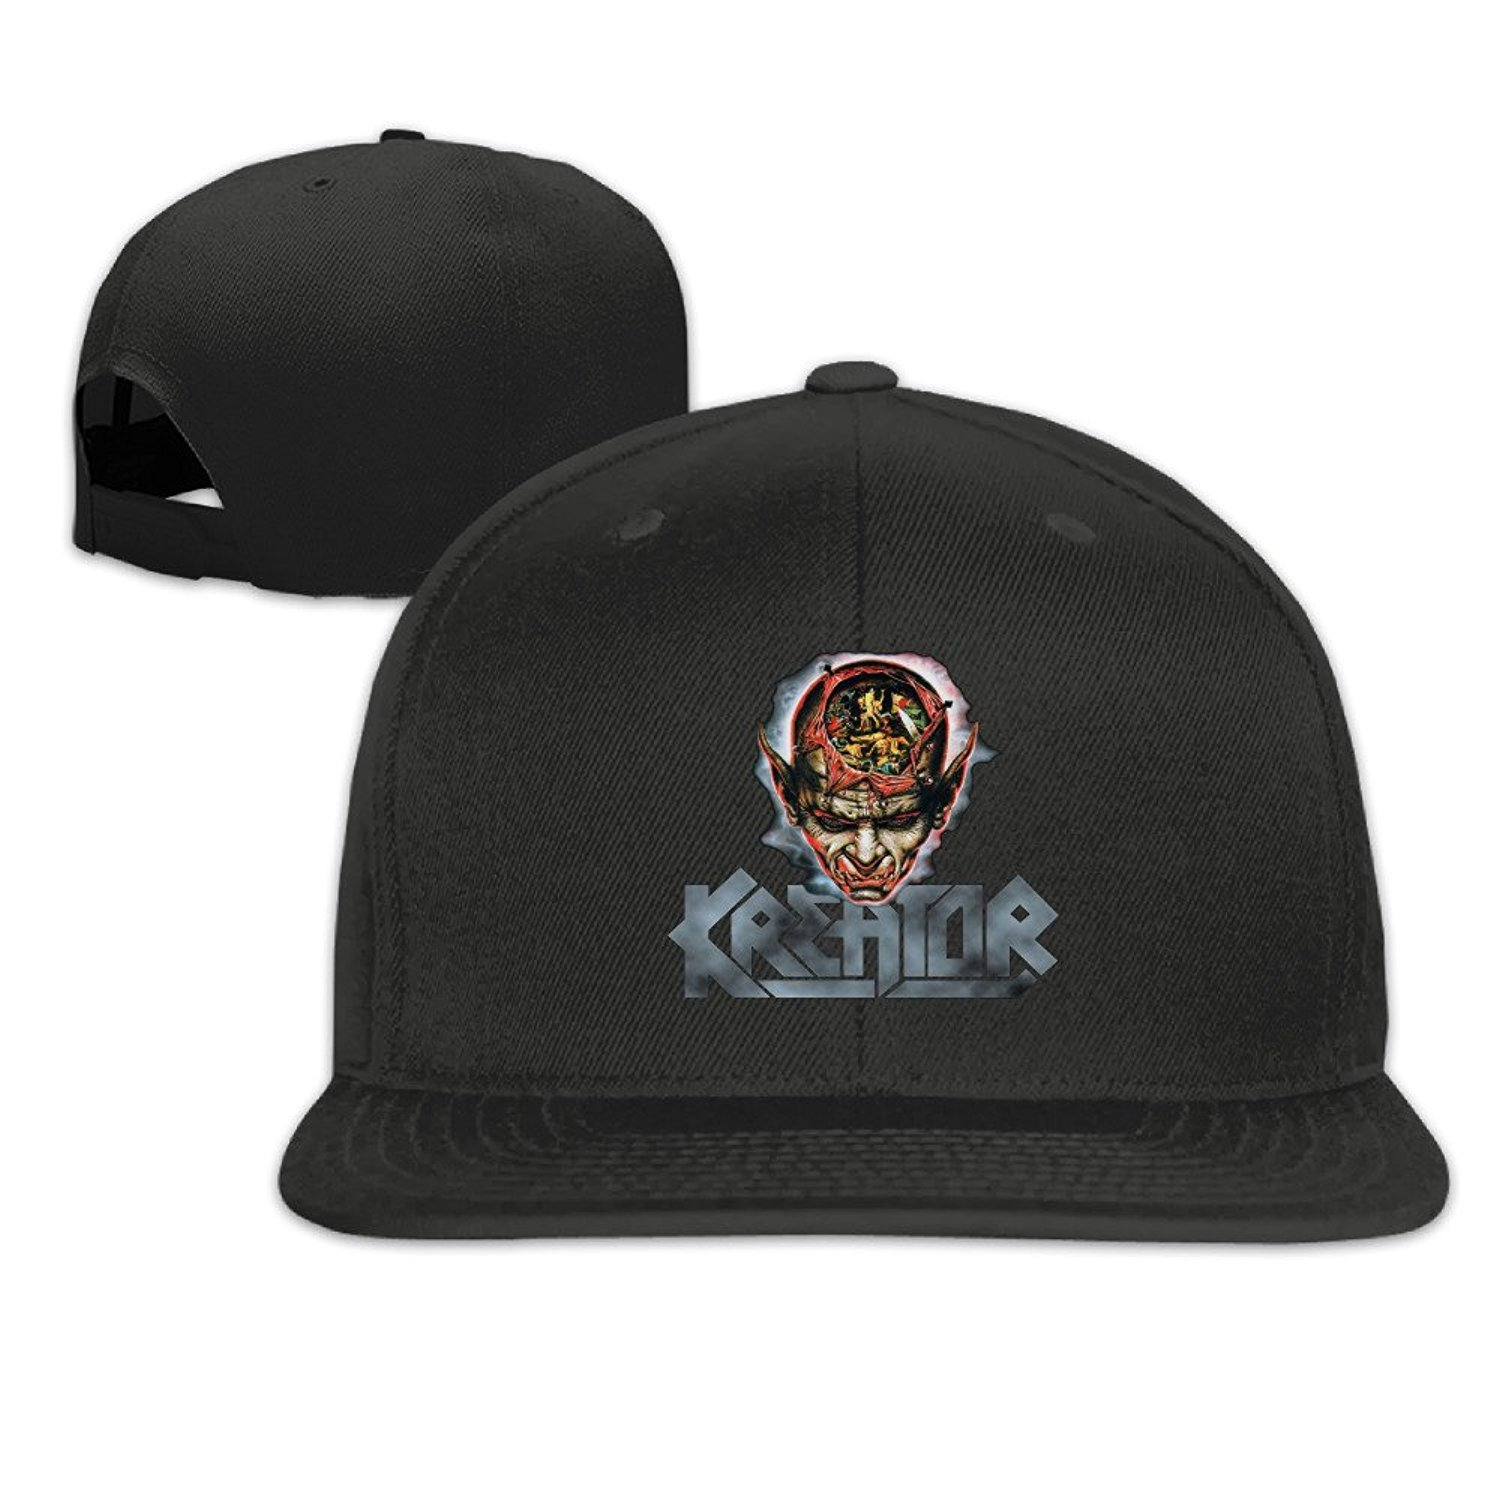 NUCLEAR ASSAULT black cap hat NEW embroidered logo thrash metal